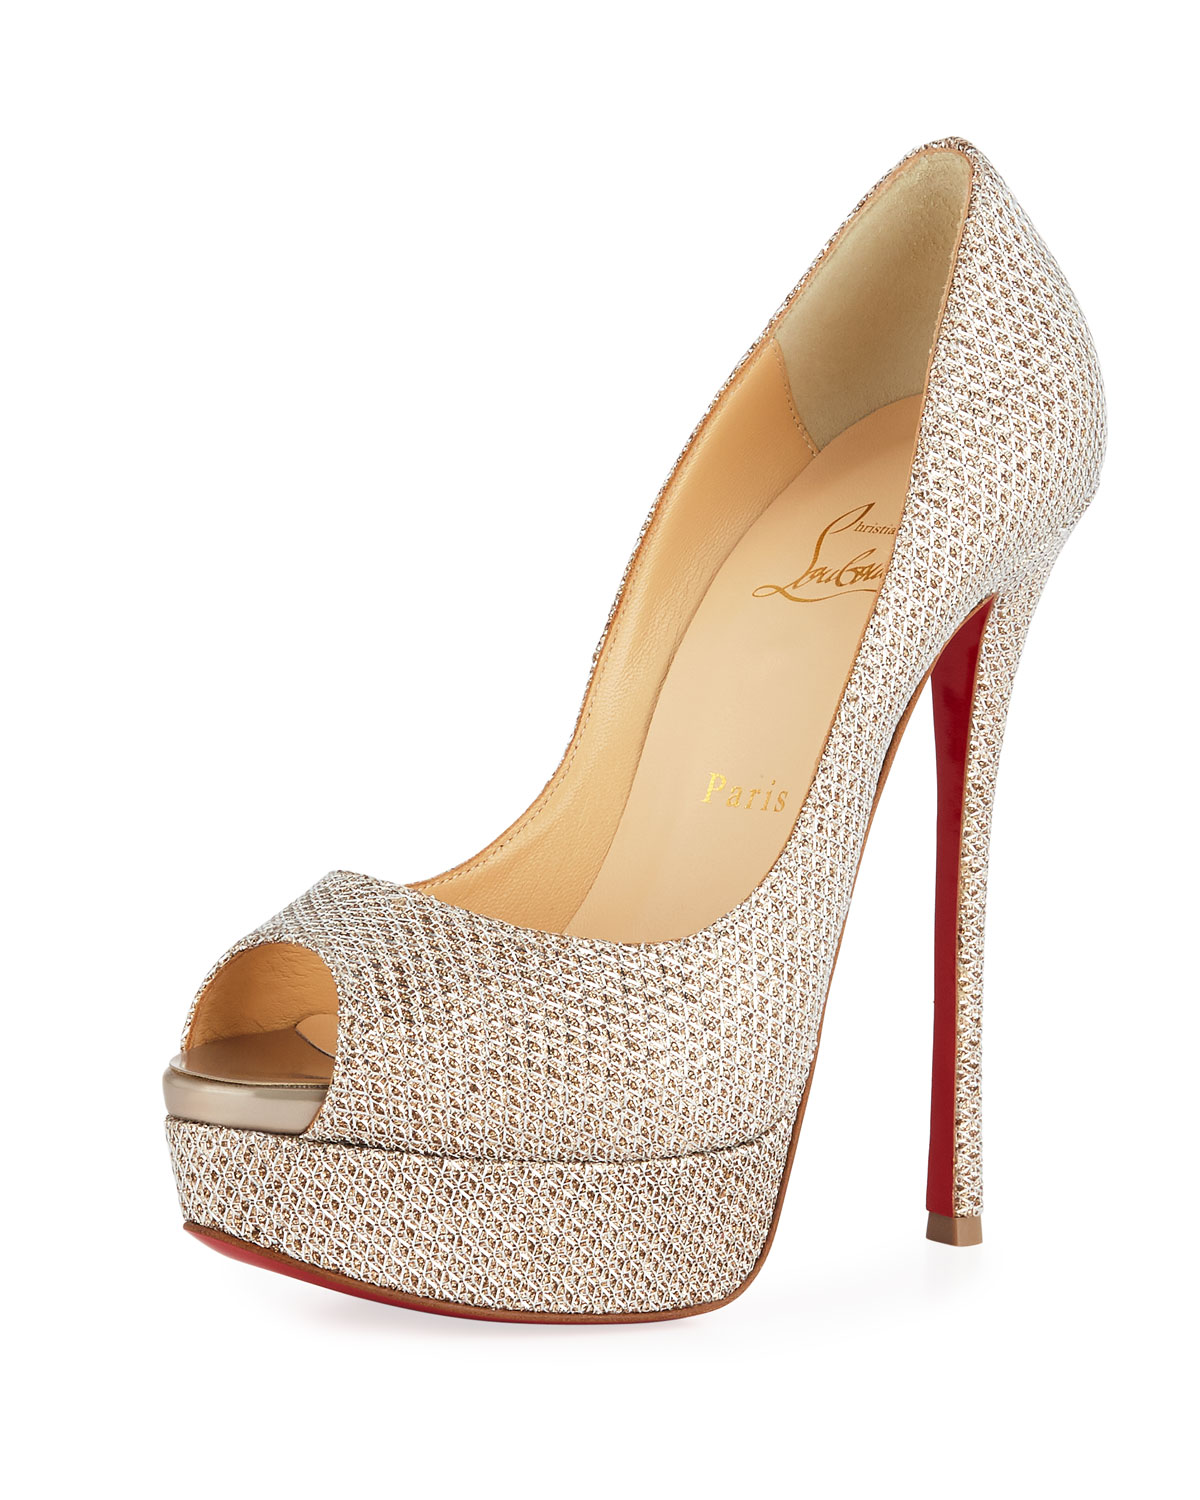 christian louboutin fetish peep 150mm platform red sole pumps rh neimanmarcus com